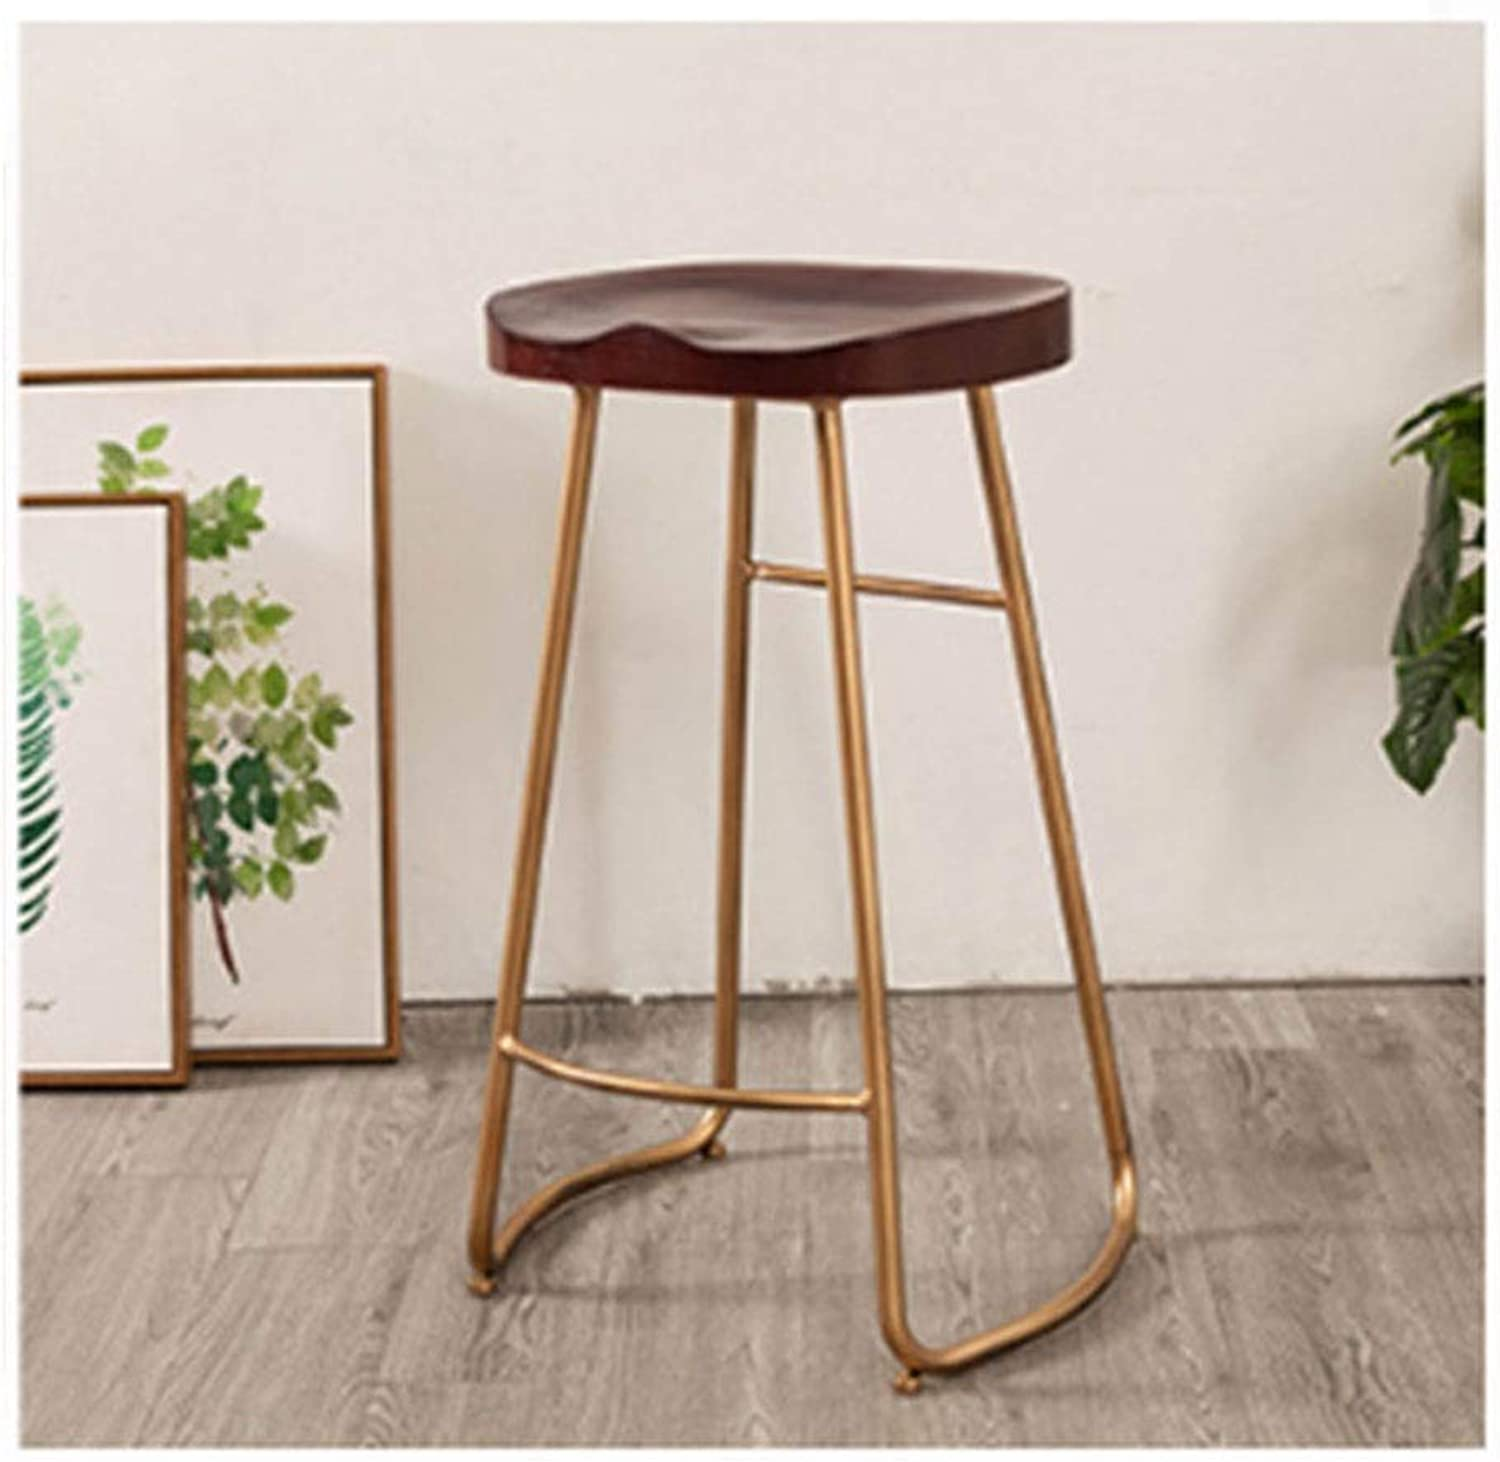 Modern Minimalist Wrought Iron Bar Stool Unique Material Wooden High Stool Cafe Restaurant Bar Selection 0527BAR22 (color   Red)